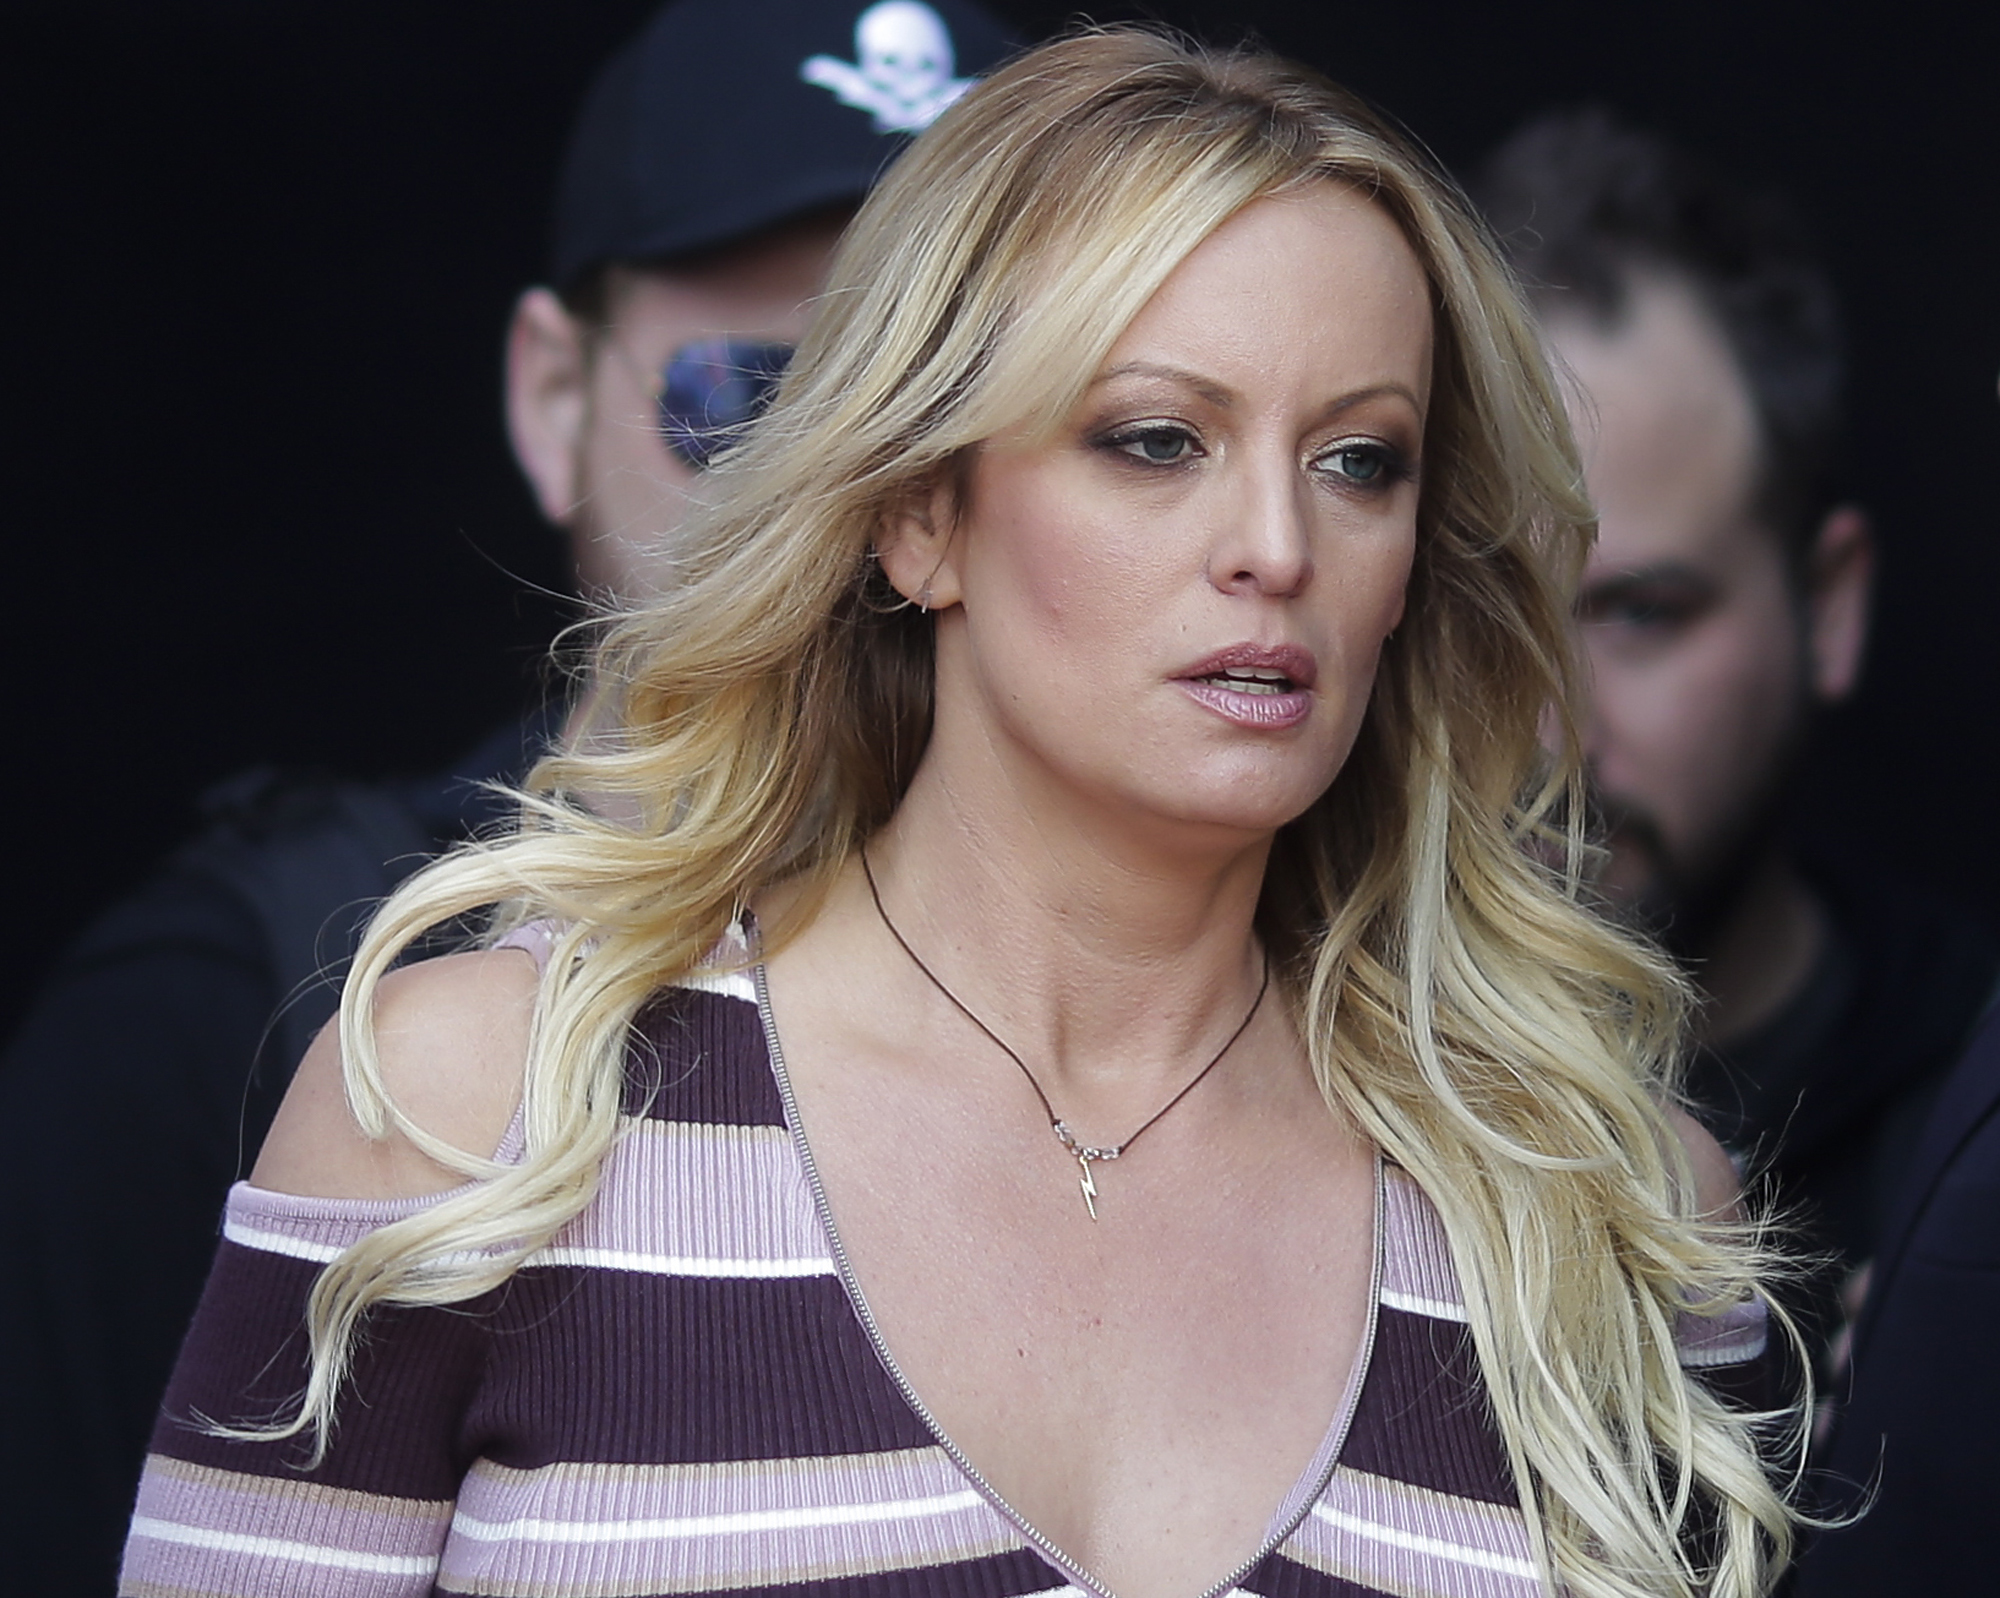 Adult film actress Stormy Daniels arrives for the opening of the adult entertainment fair 'Venus,' in Berlin Oct. 11. On Monday, a federal judge dismissed Daniels' defamation lawsuit against President Donald Trump. | AP